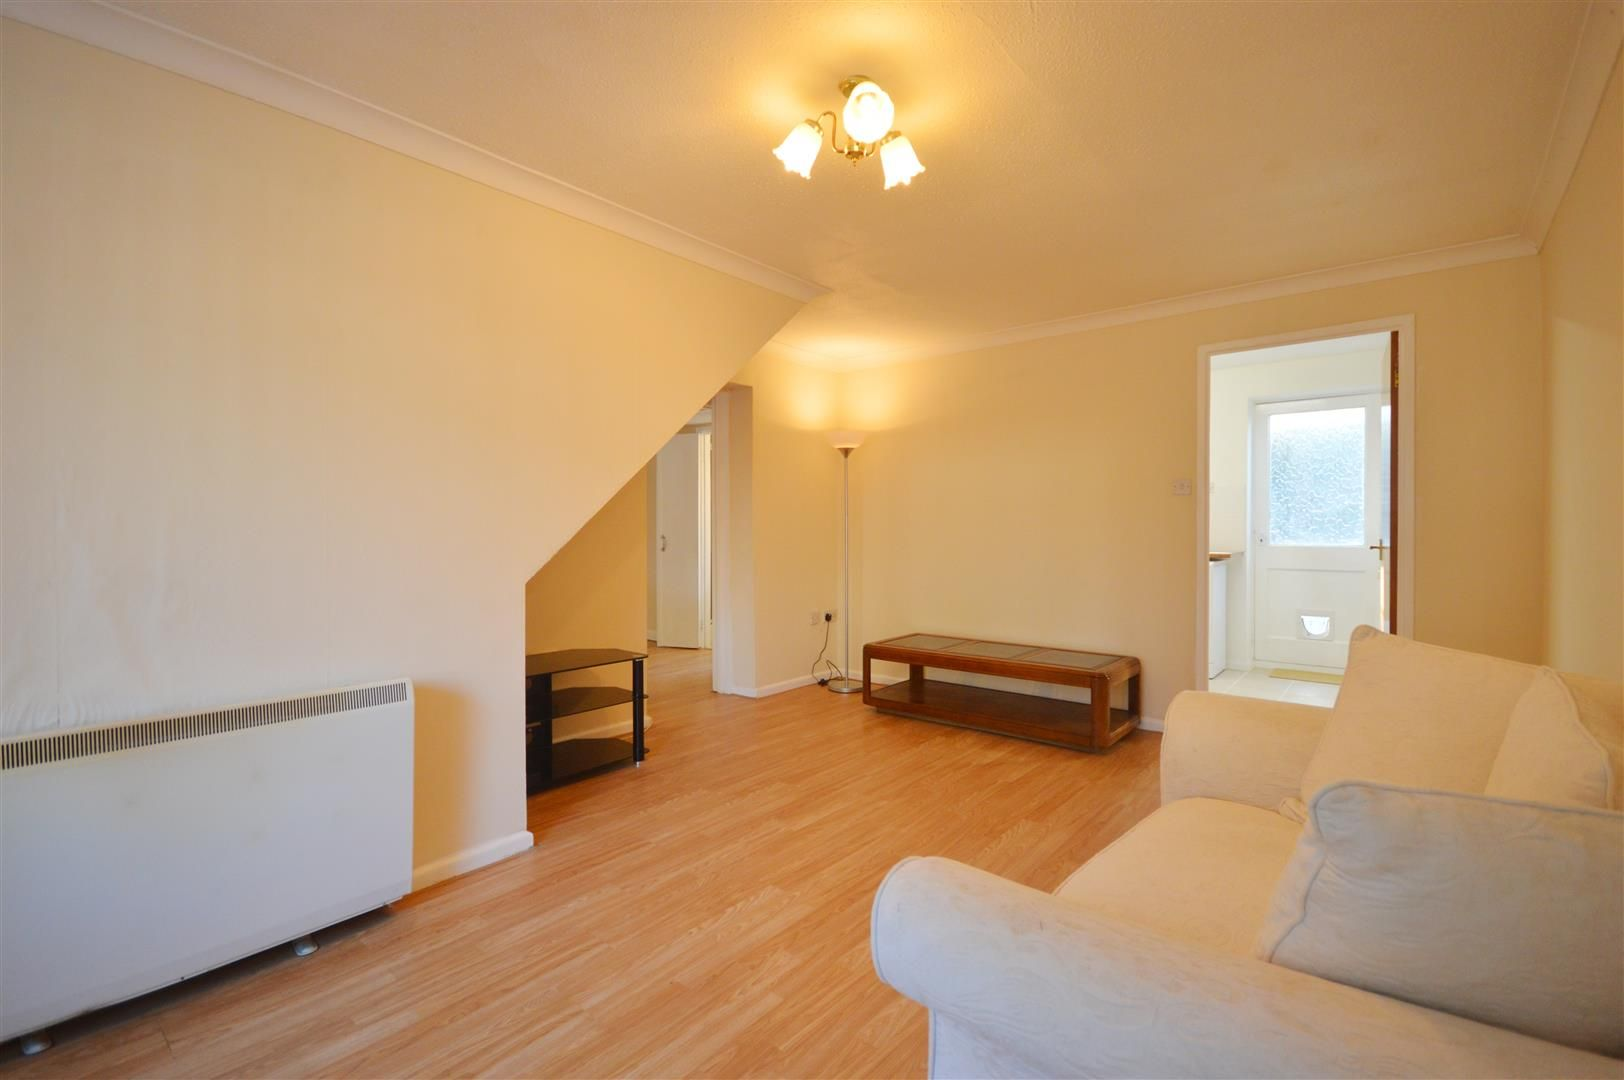 3 bed semi-detached to rent in Leominster 3